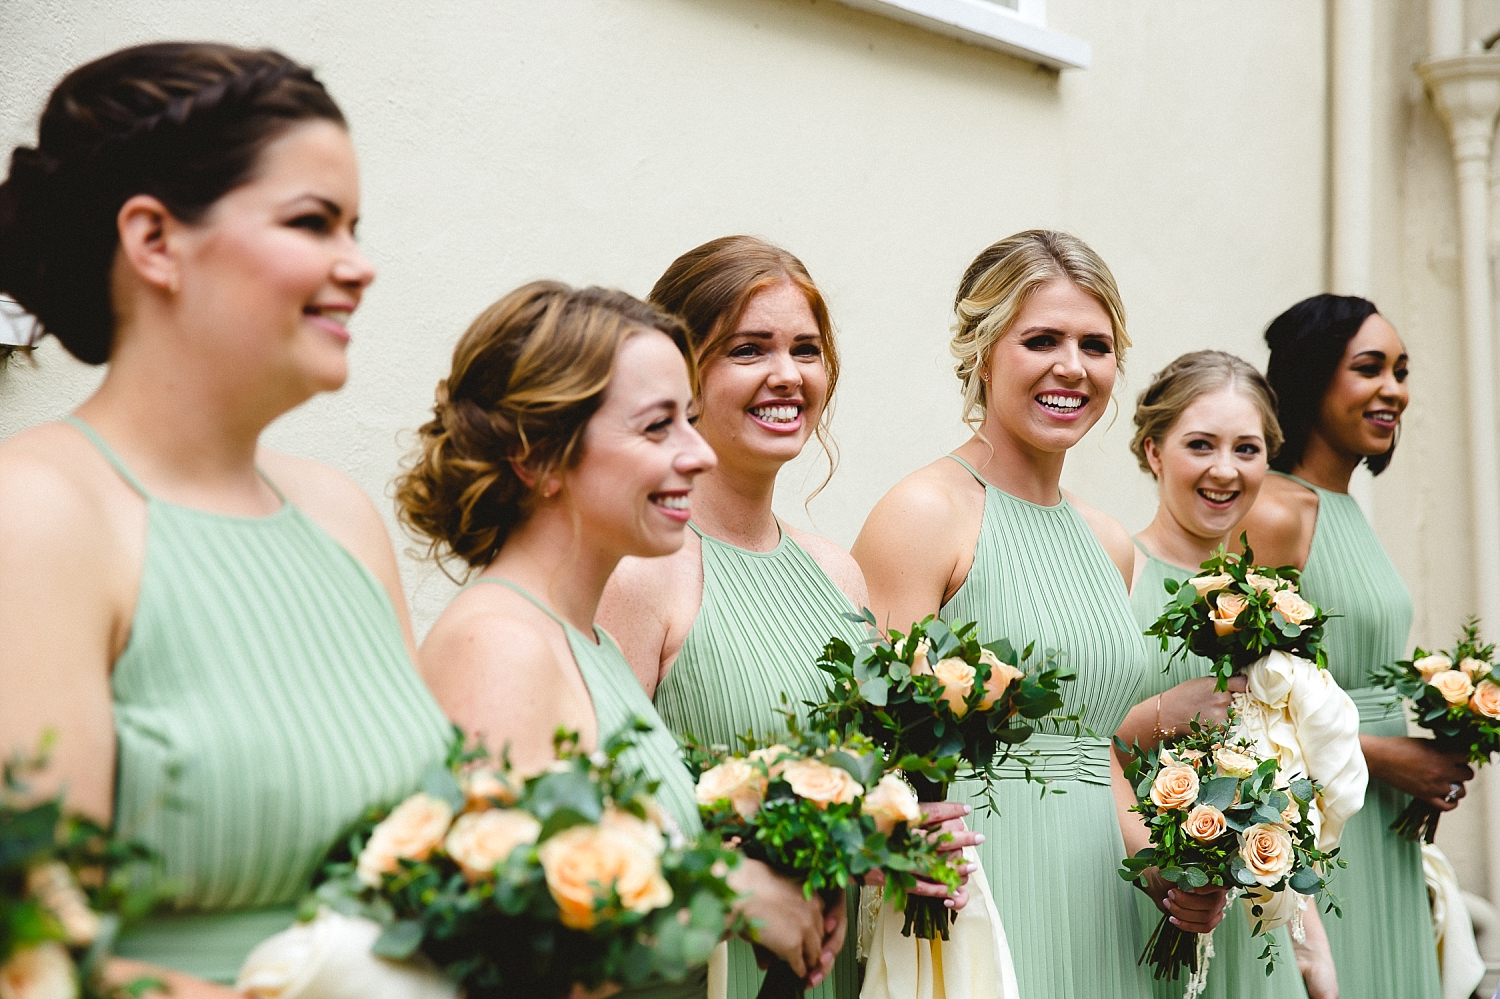 Houchins-Wedding-Photographer_0037.jpg